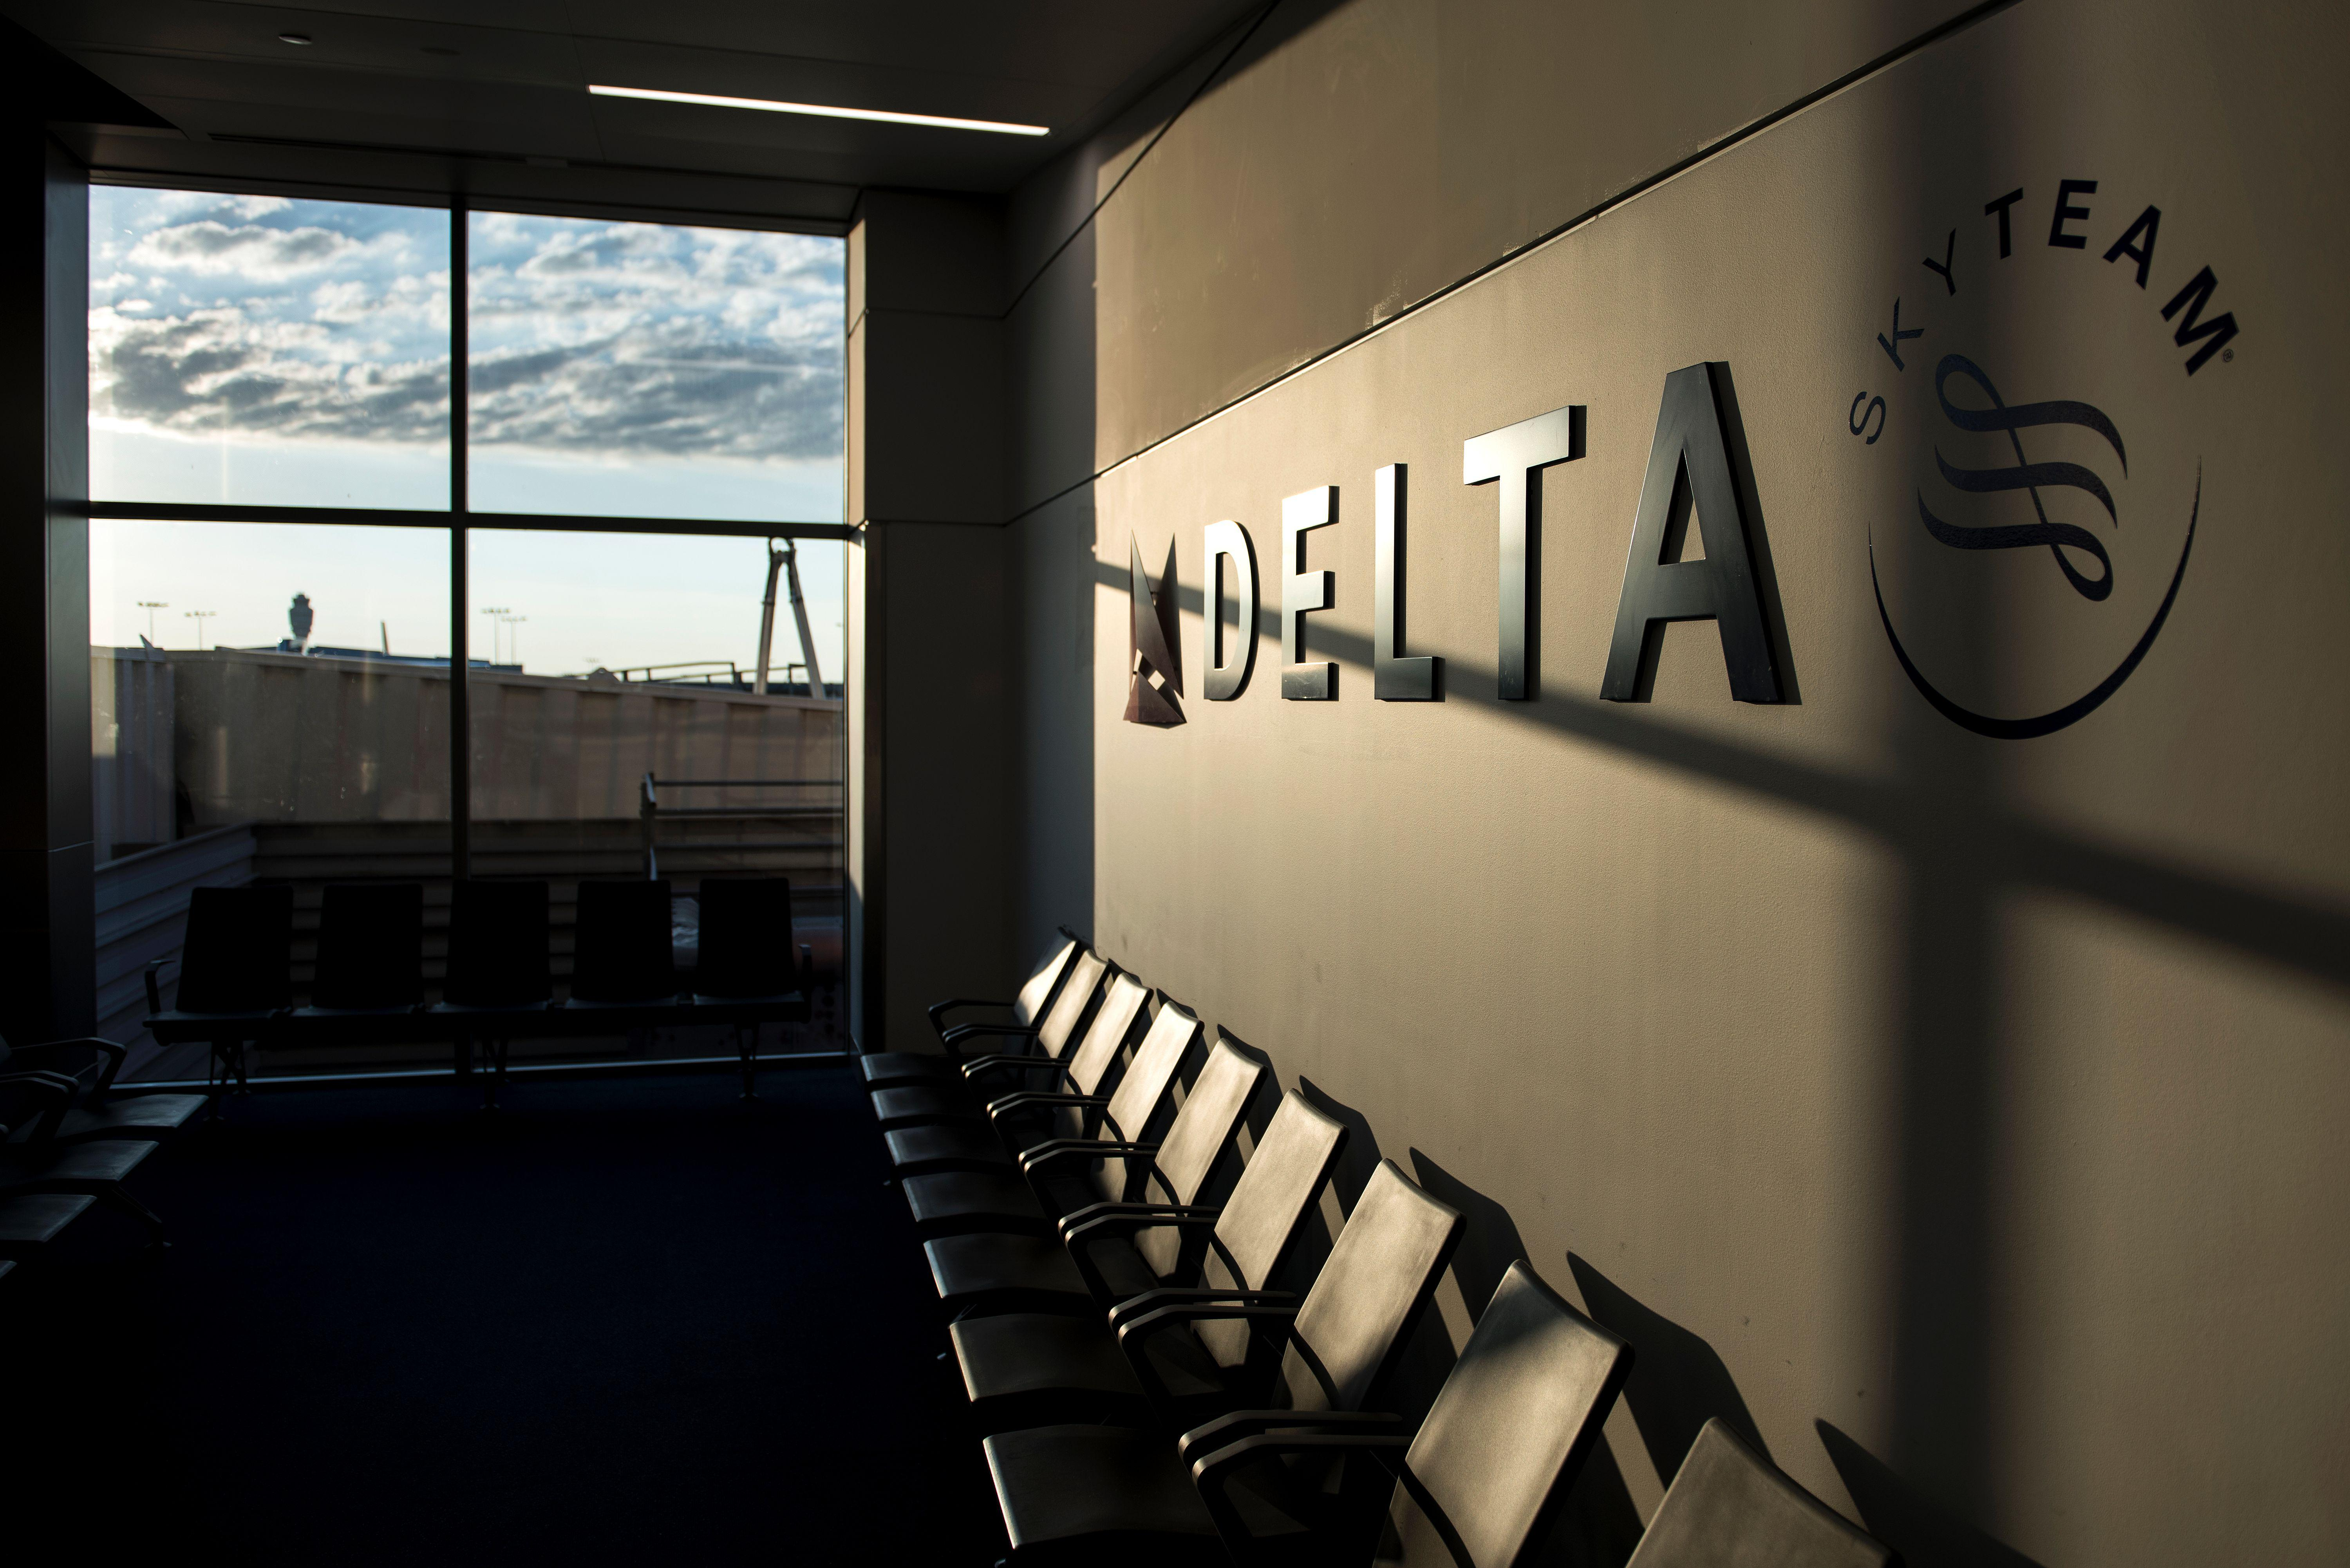 Natural light isn't a terrible look, unless you're running the world's busiest airport.